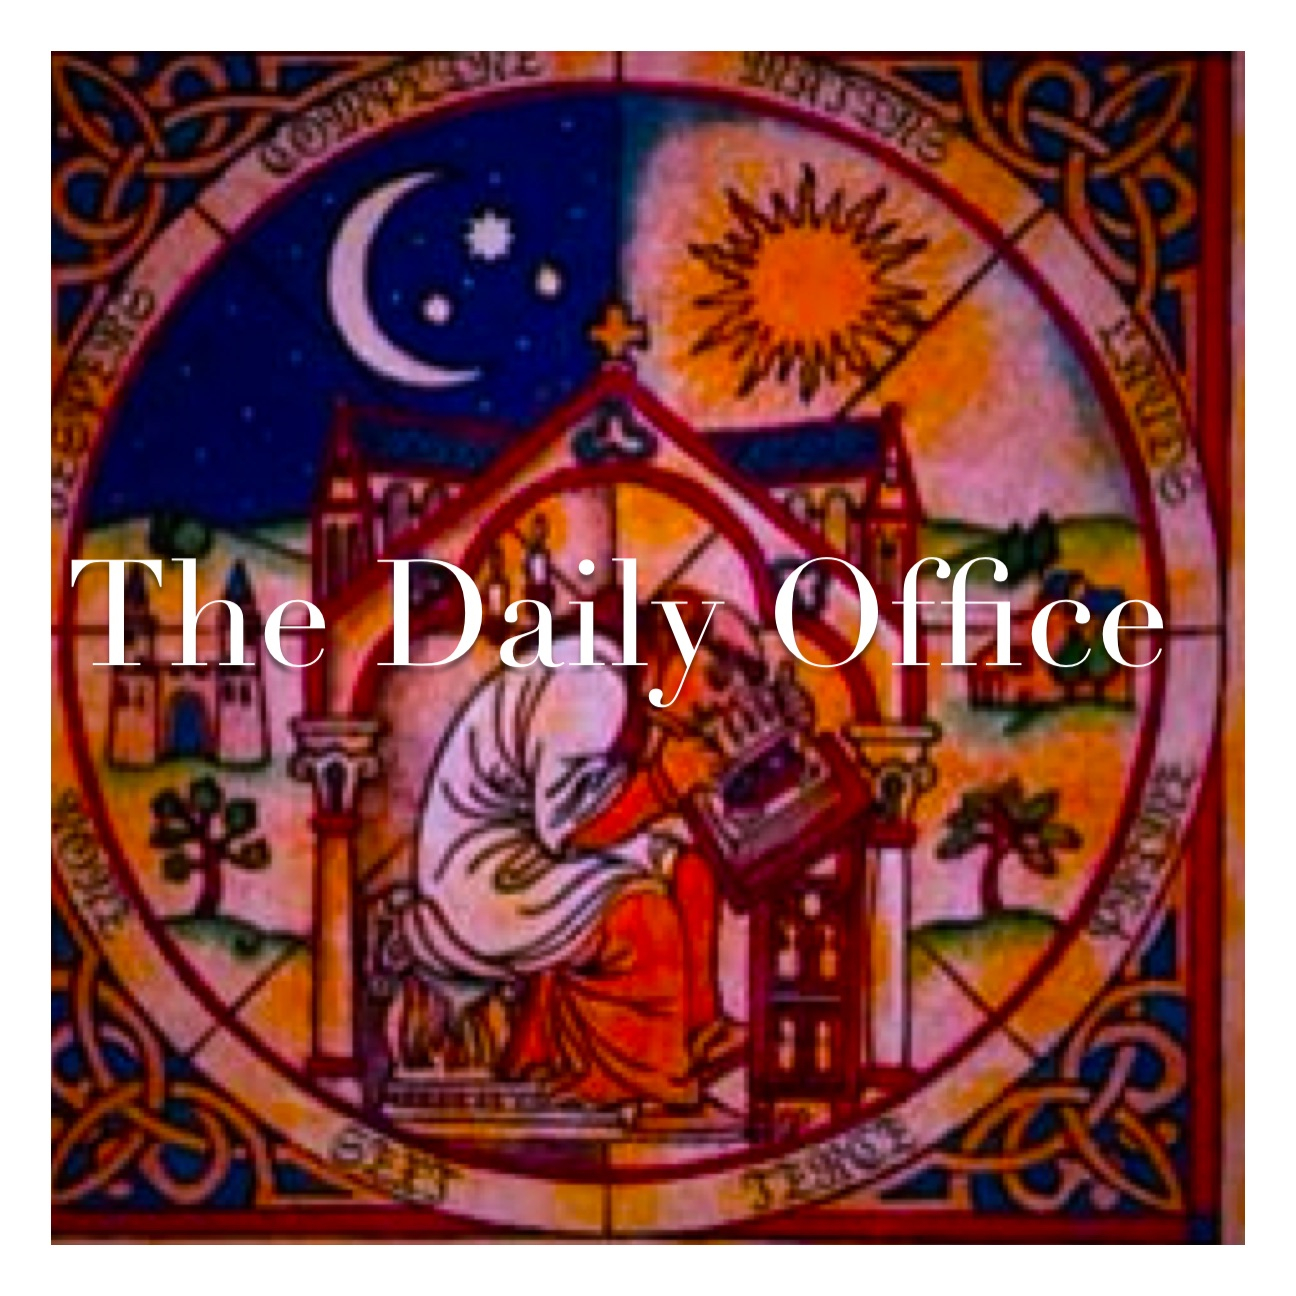 4 Reasons I Pray The Daily Office | The Anglican Mission Pertaining To Four Volume Liturgy Of The Hours Calendar 2020